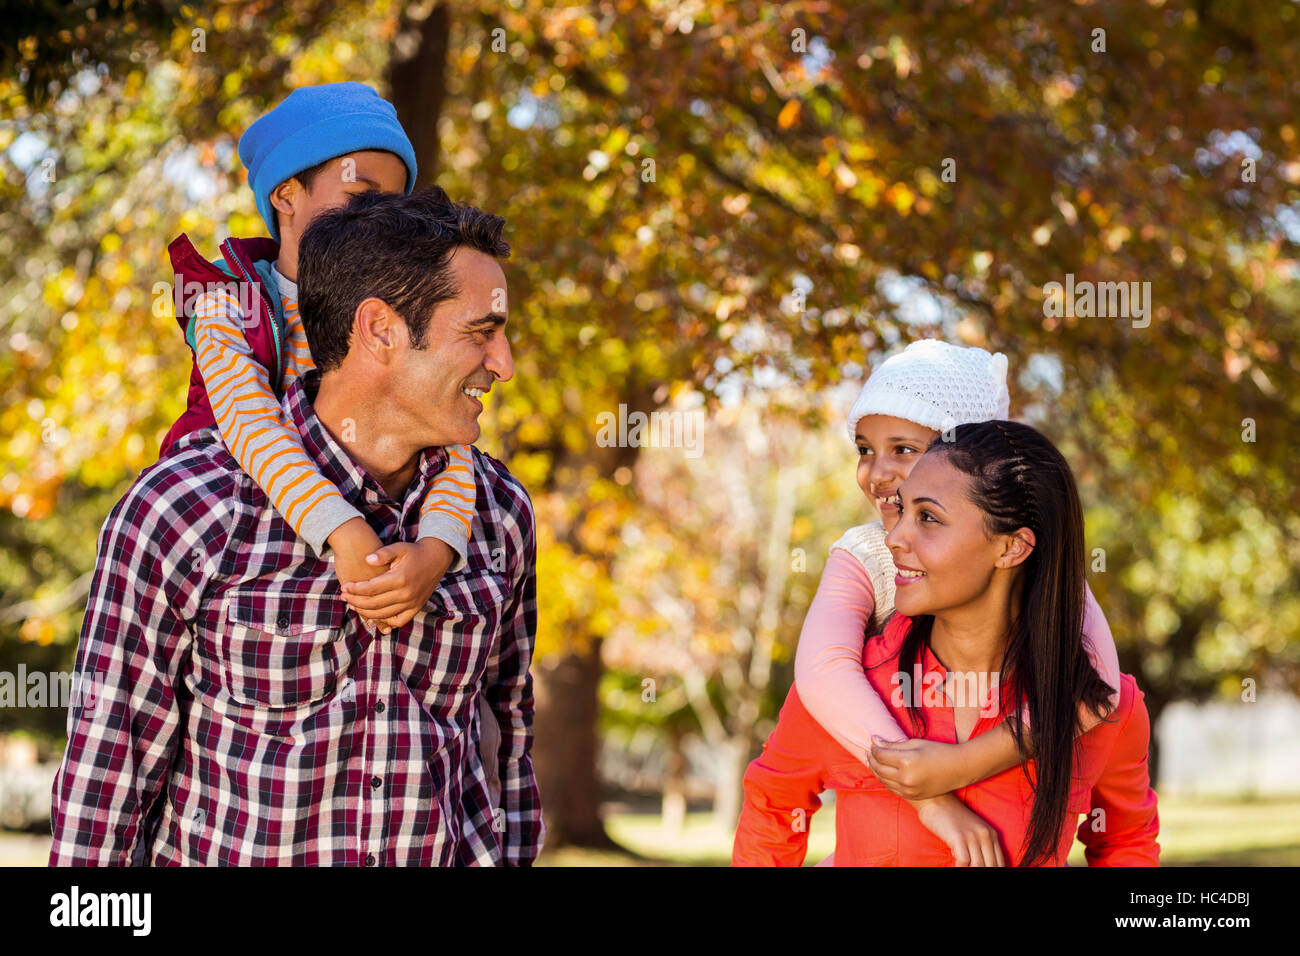 Happy parents piggybacking children at park - Stock Image